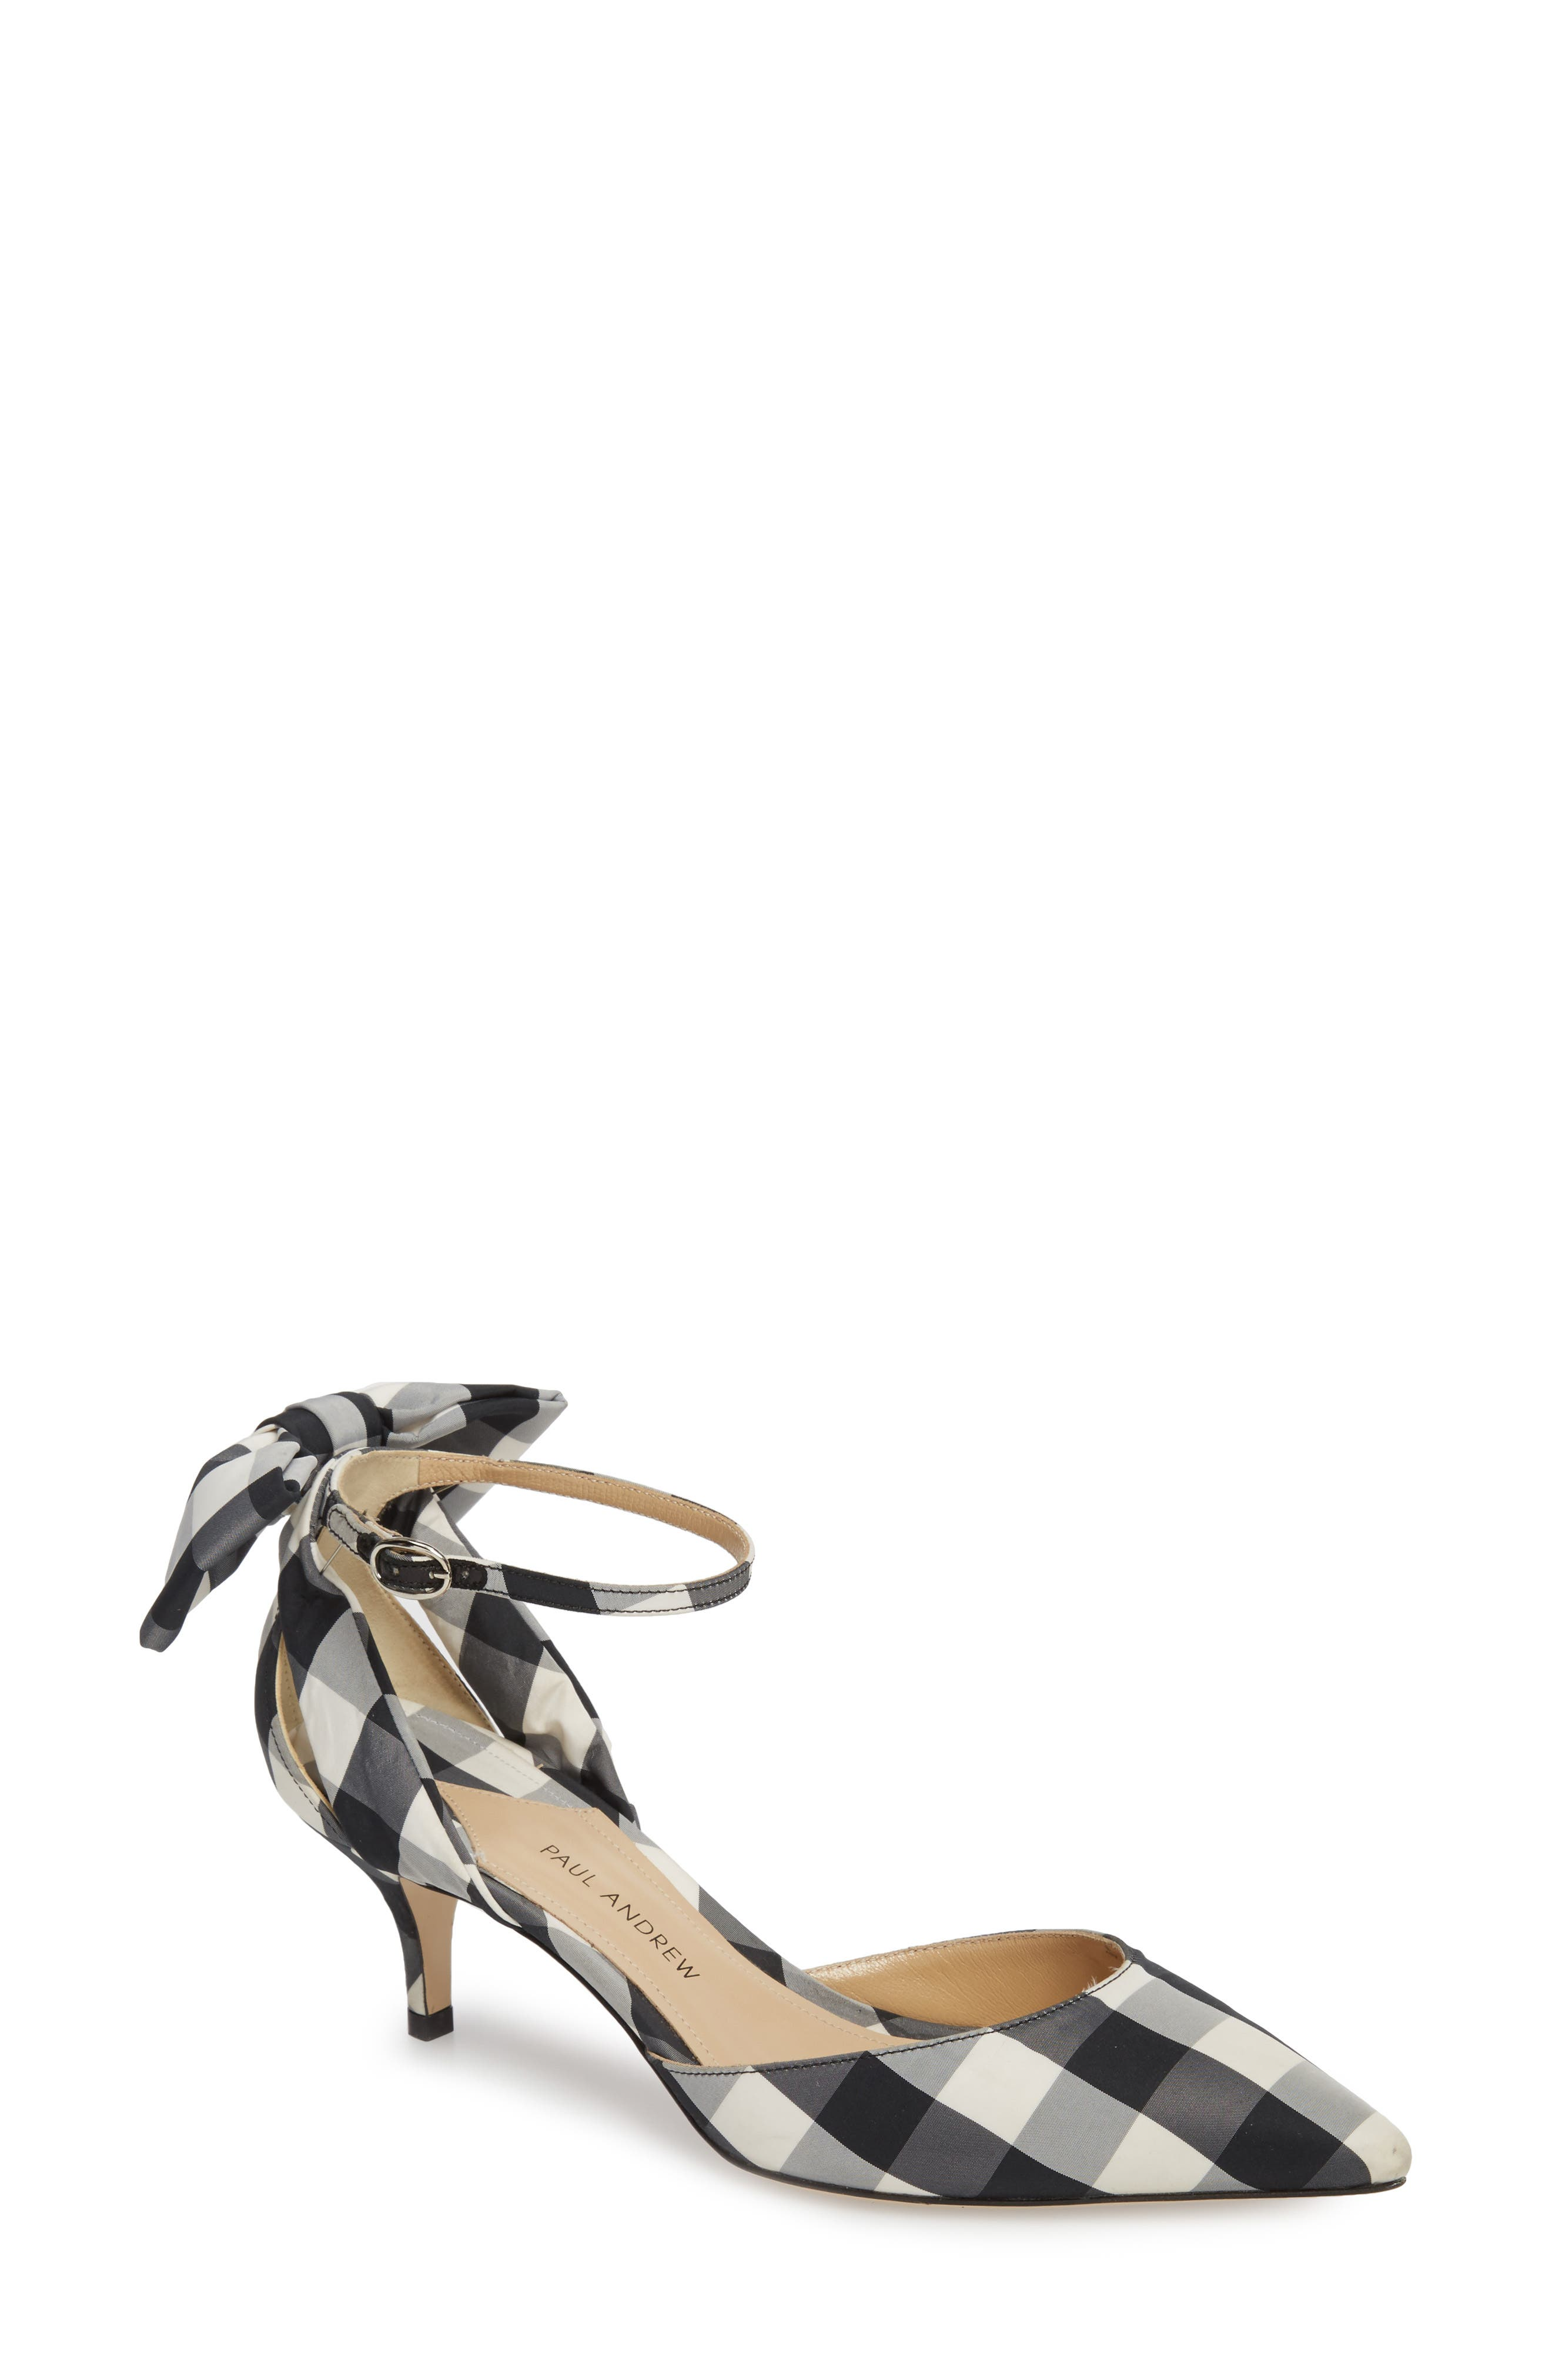 Alternate Image 1 Selected - Paul Andrew Anya Bow Ankle Strap Pump (Women)